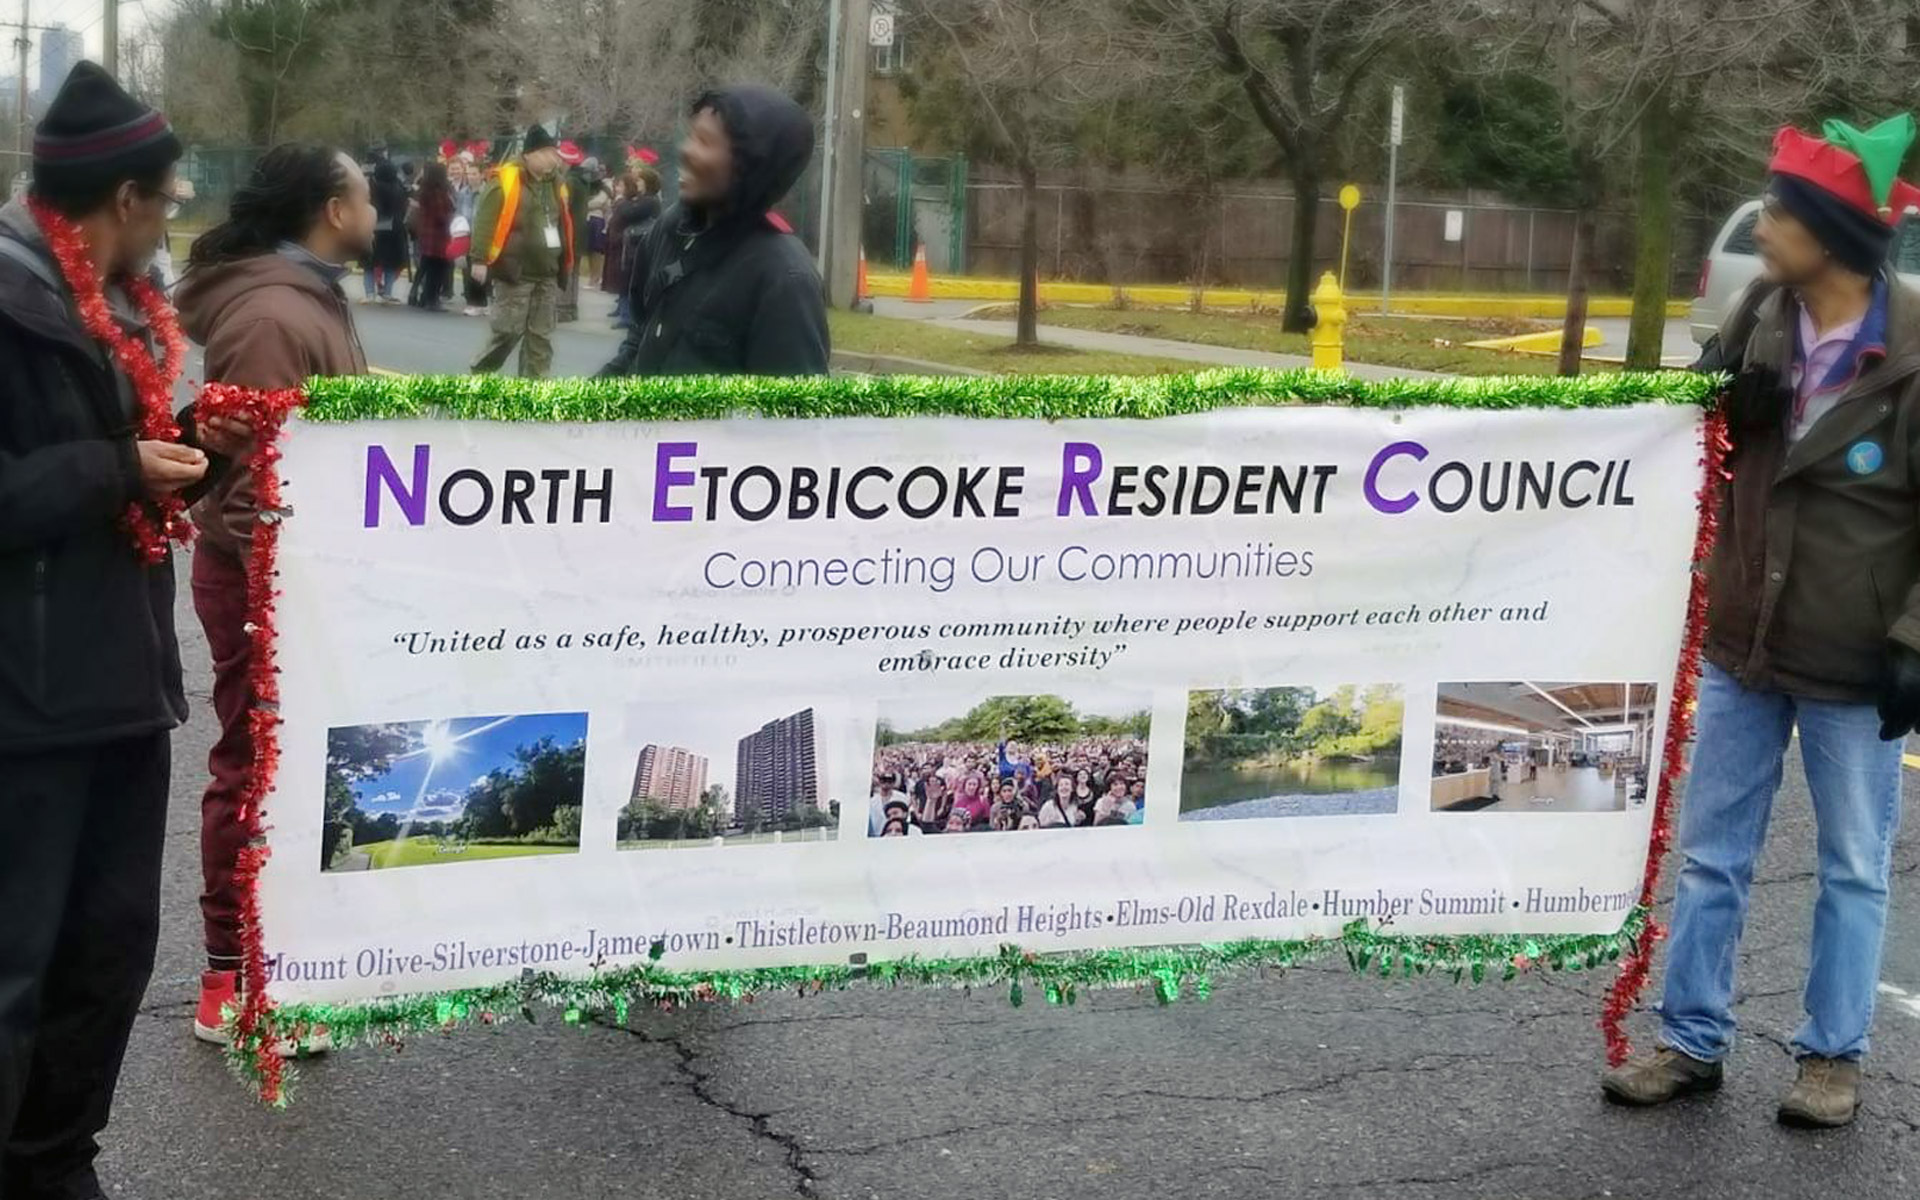 Outdoor Banner of North Etobicoke Resident Council